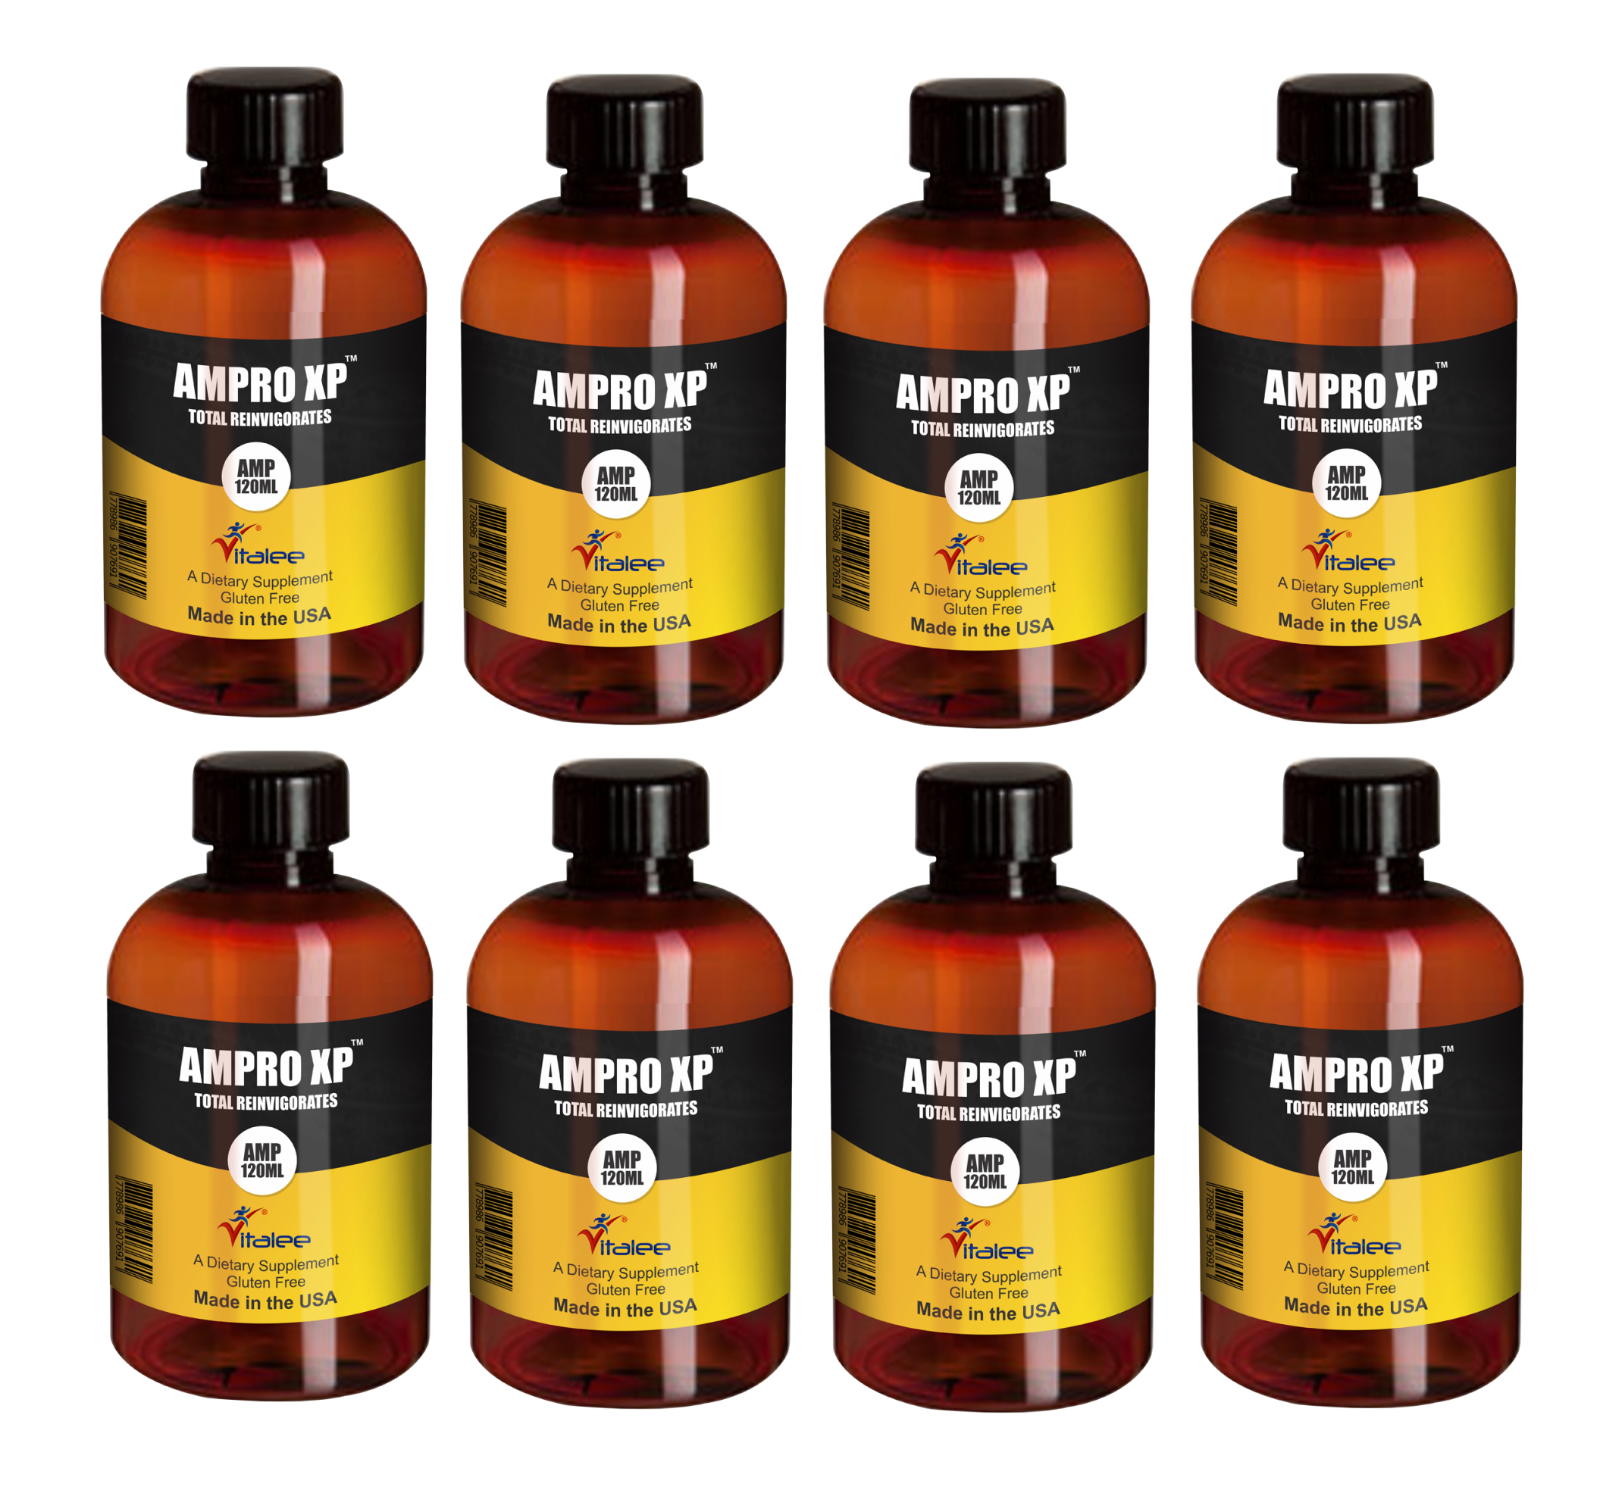 Primary image for Ampro XP Super Energy Booster Pack of 8 Bottles. (120 ml each bottle)